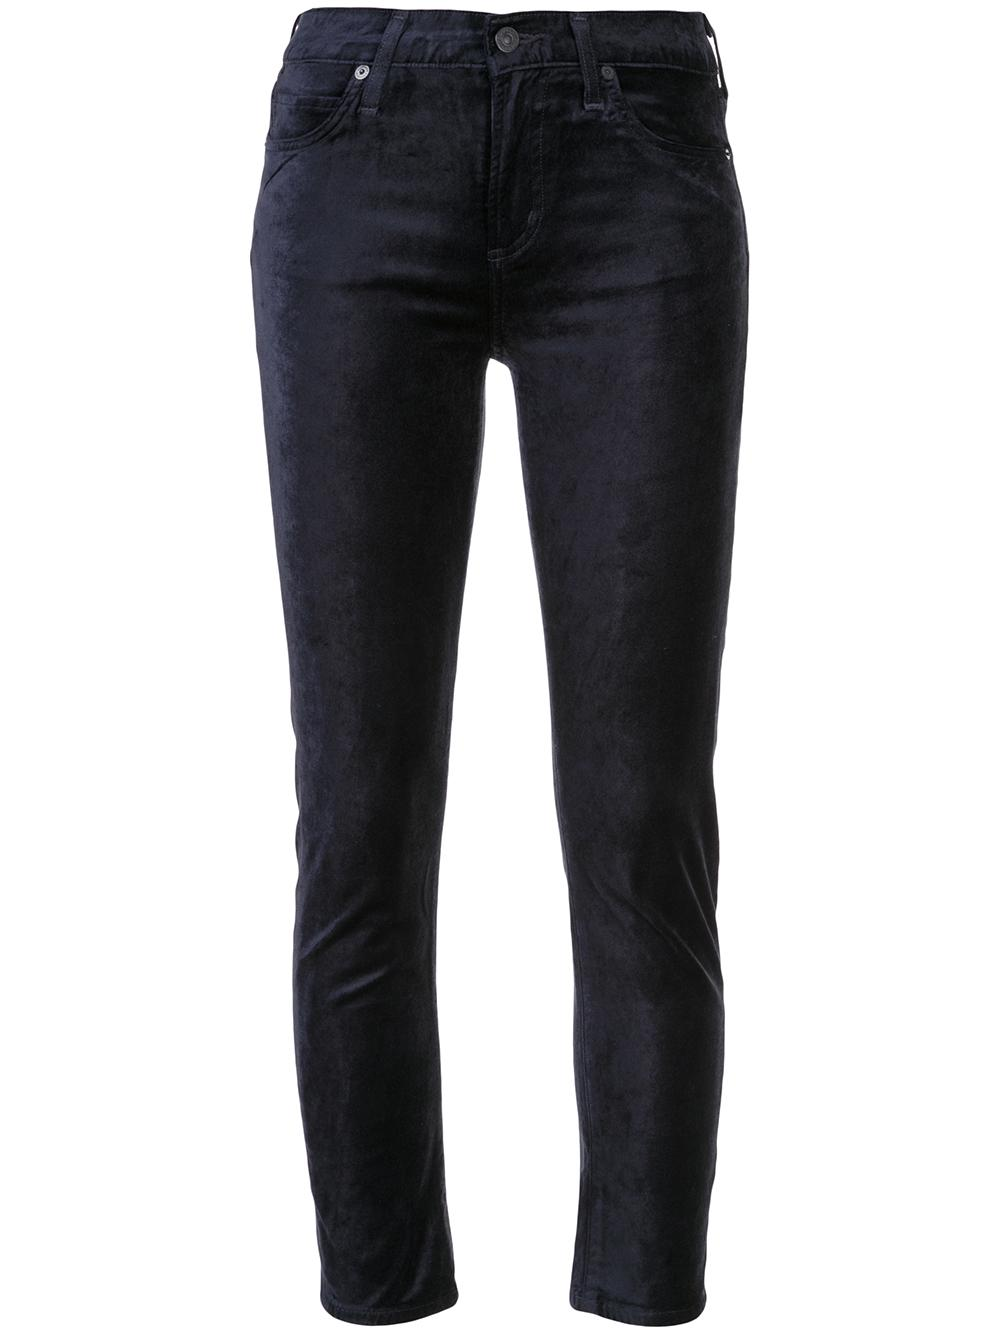 Harlow Velour Ankle Mid Rise Skinny Item # 1778-1184